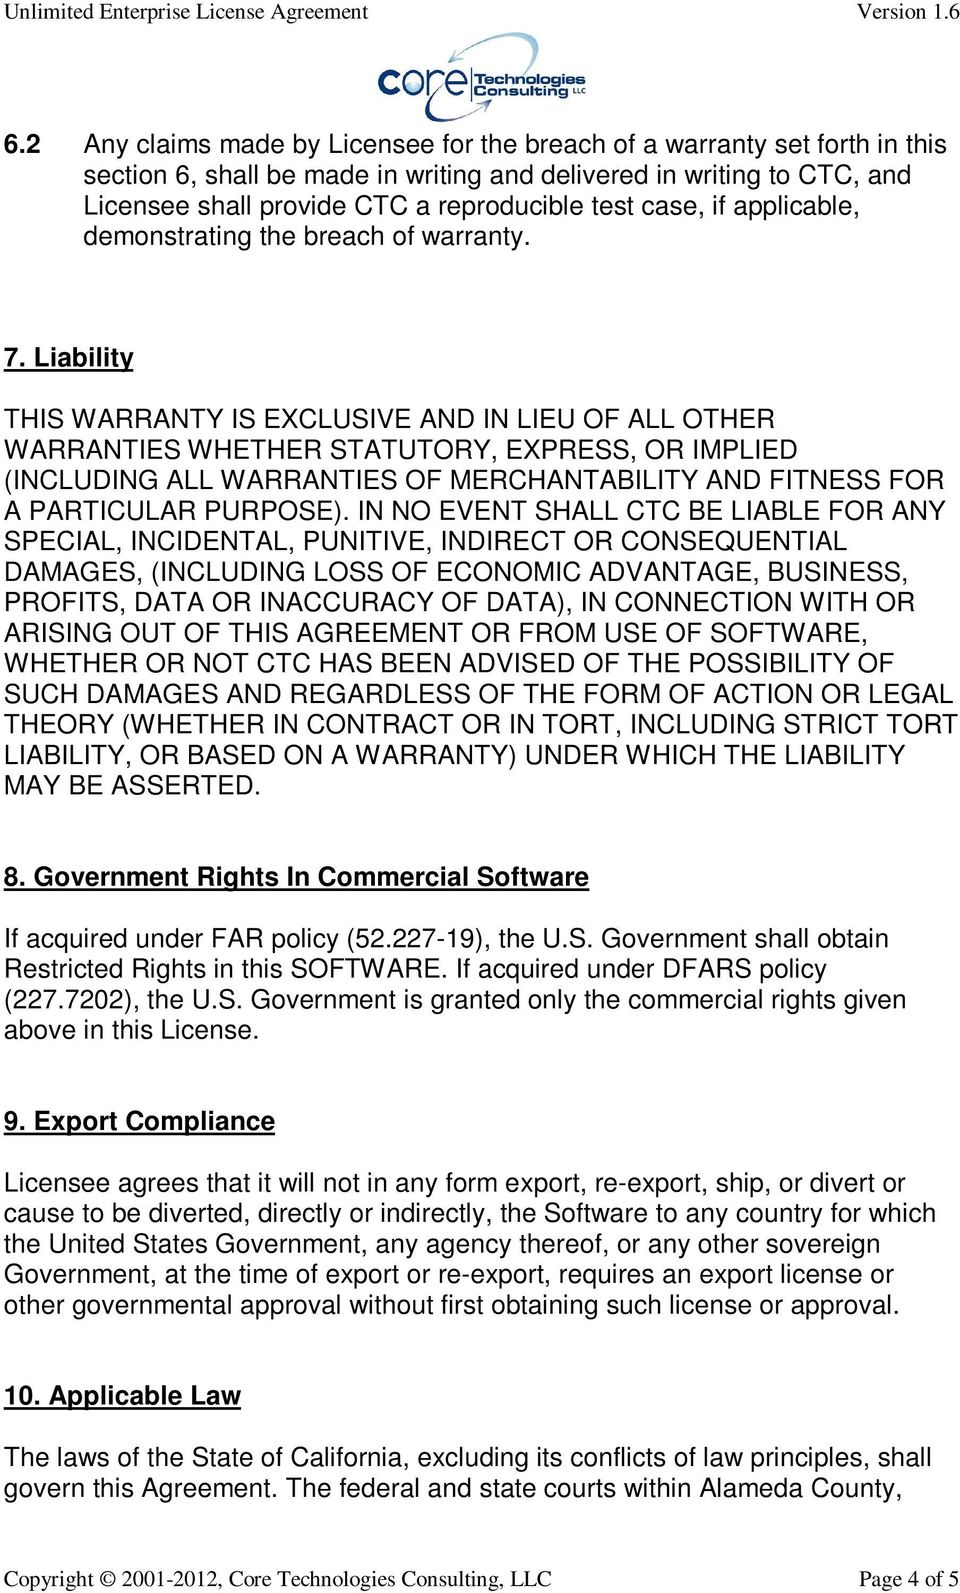 Liability THIS WARRANTY IS EXCLUSIVE AND IN LIEU OF ALL OTHER WARRANTIES WHETHER STATUTORY, EXPRESS, OR IMPLIED (INCLUDING ALL WARRANTIES OF MERCHANTABILITY AND FITNESS FOR A PARTICULAR PURPOSE).